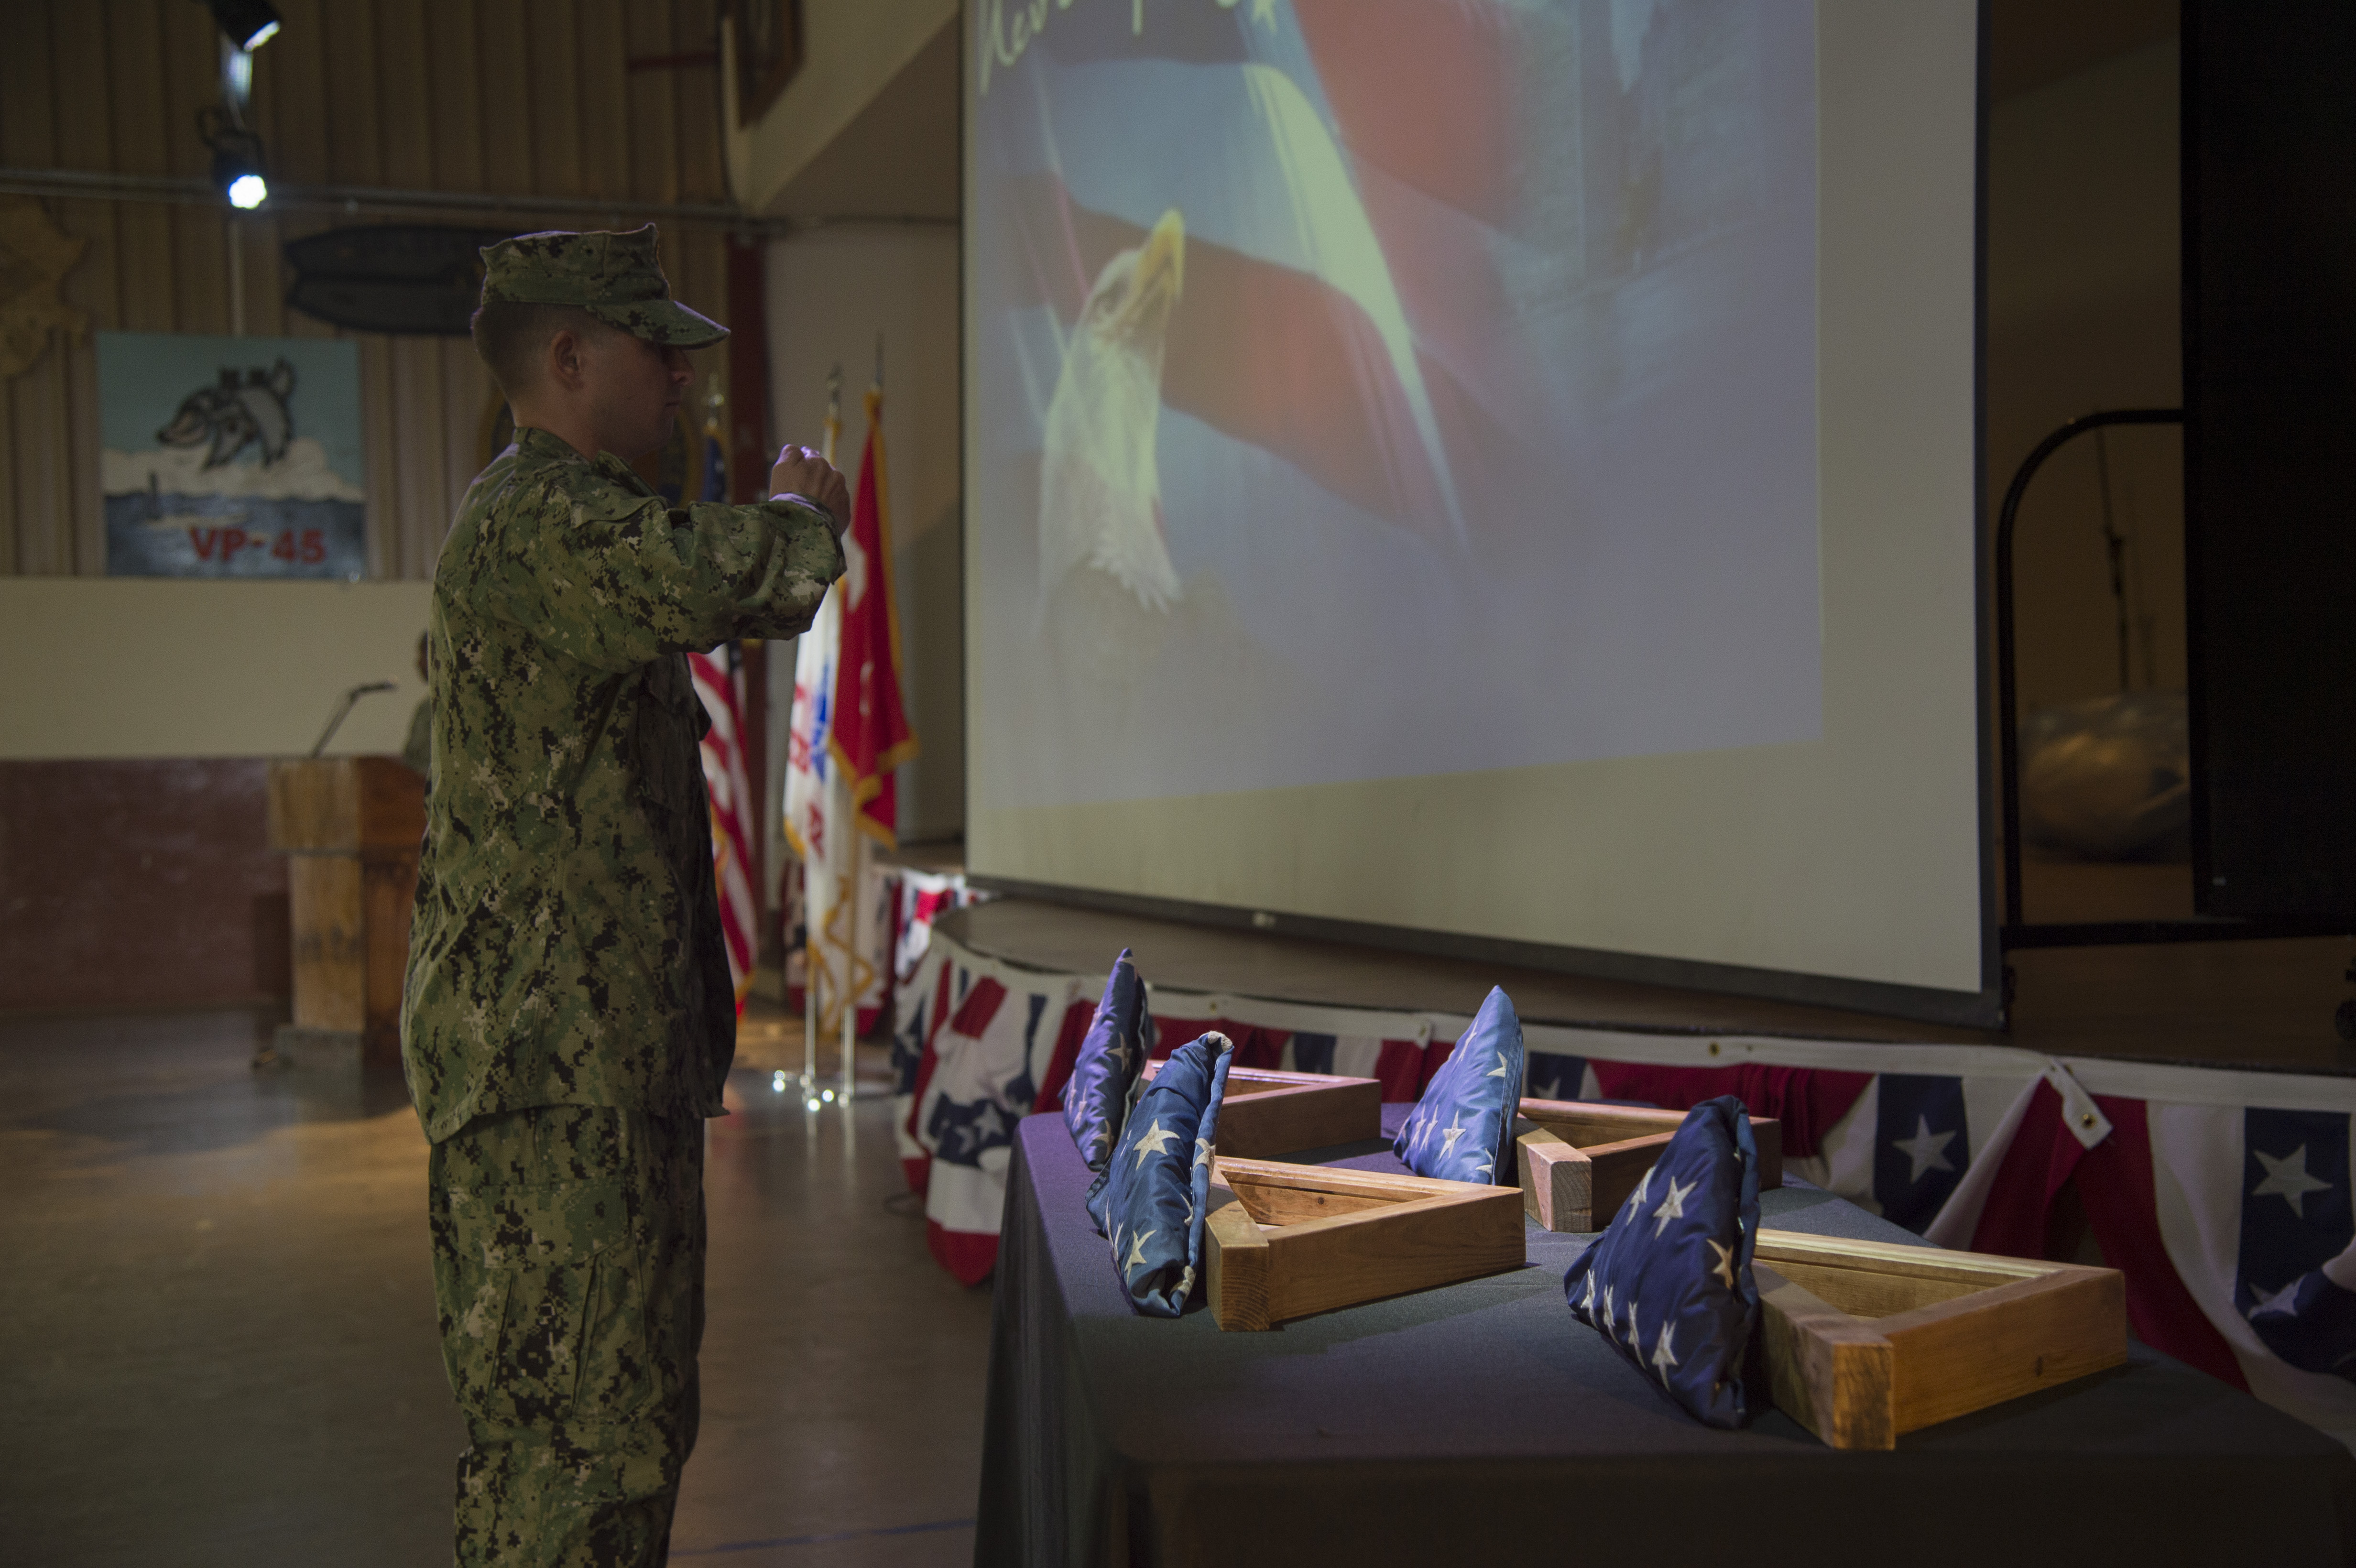 U.S. Navy Master at Arms 1st Class Luis Diaz gives remarks during a 9/11 remembrance ceremony held Sept. 11, 2016, at Camp Lemonnier, Djibouti. Diaz served on the New York City Police Department during the attacks on 9/11. The ceremony was organized and conducted by Fiscal Year 2017 Chief Petty Officer selectees from Camp Lemonnier and Combined Joint Task Force - Horn of Africa.  (U.S. Air Force photo by Staff Sgt. Eric Summers Jr.)